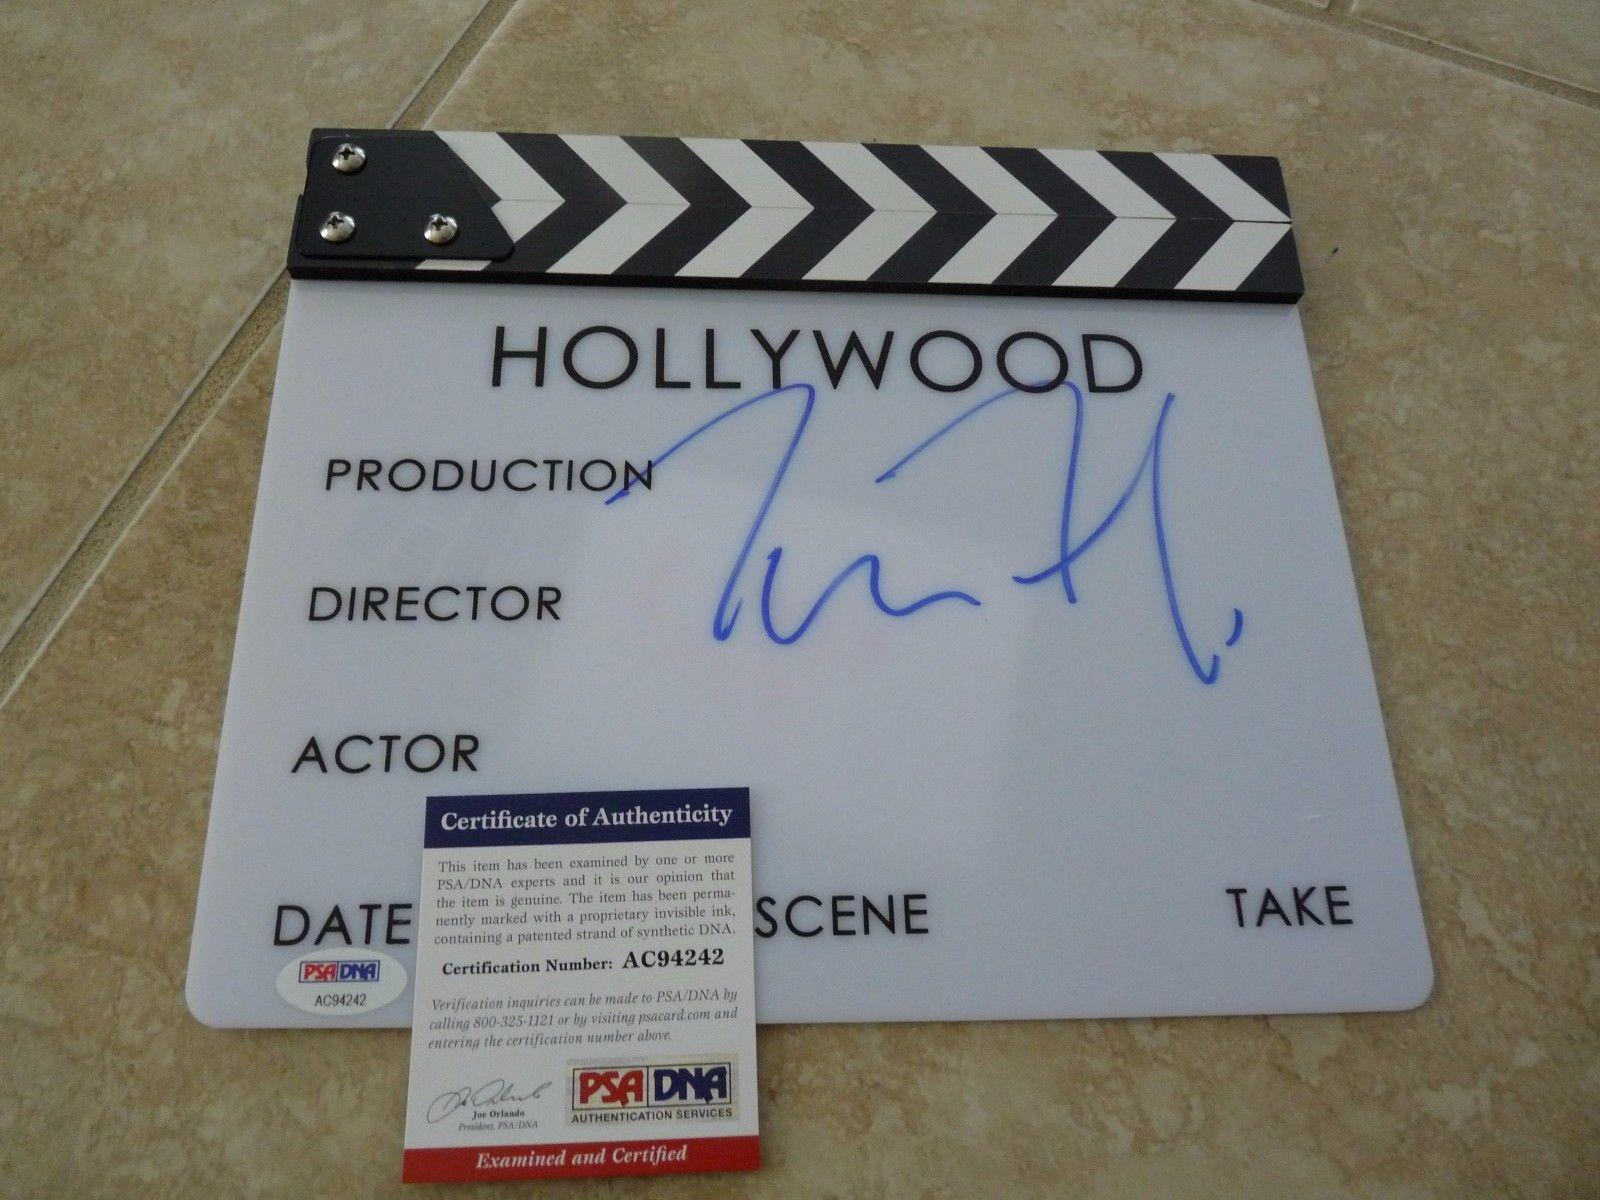 Tom Ford Director Nocturnal Animals Signed Autographed Clapboard Psa